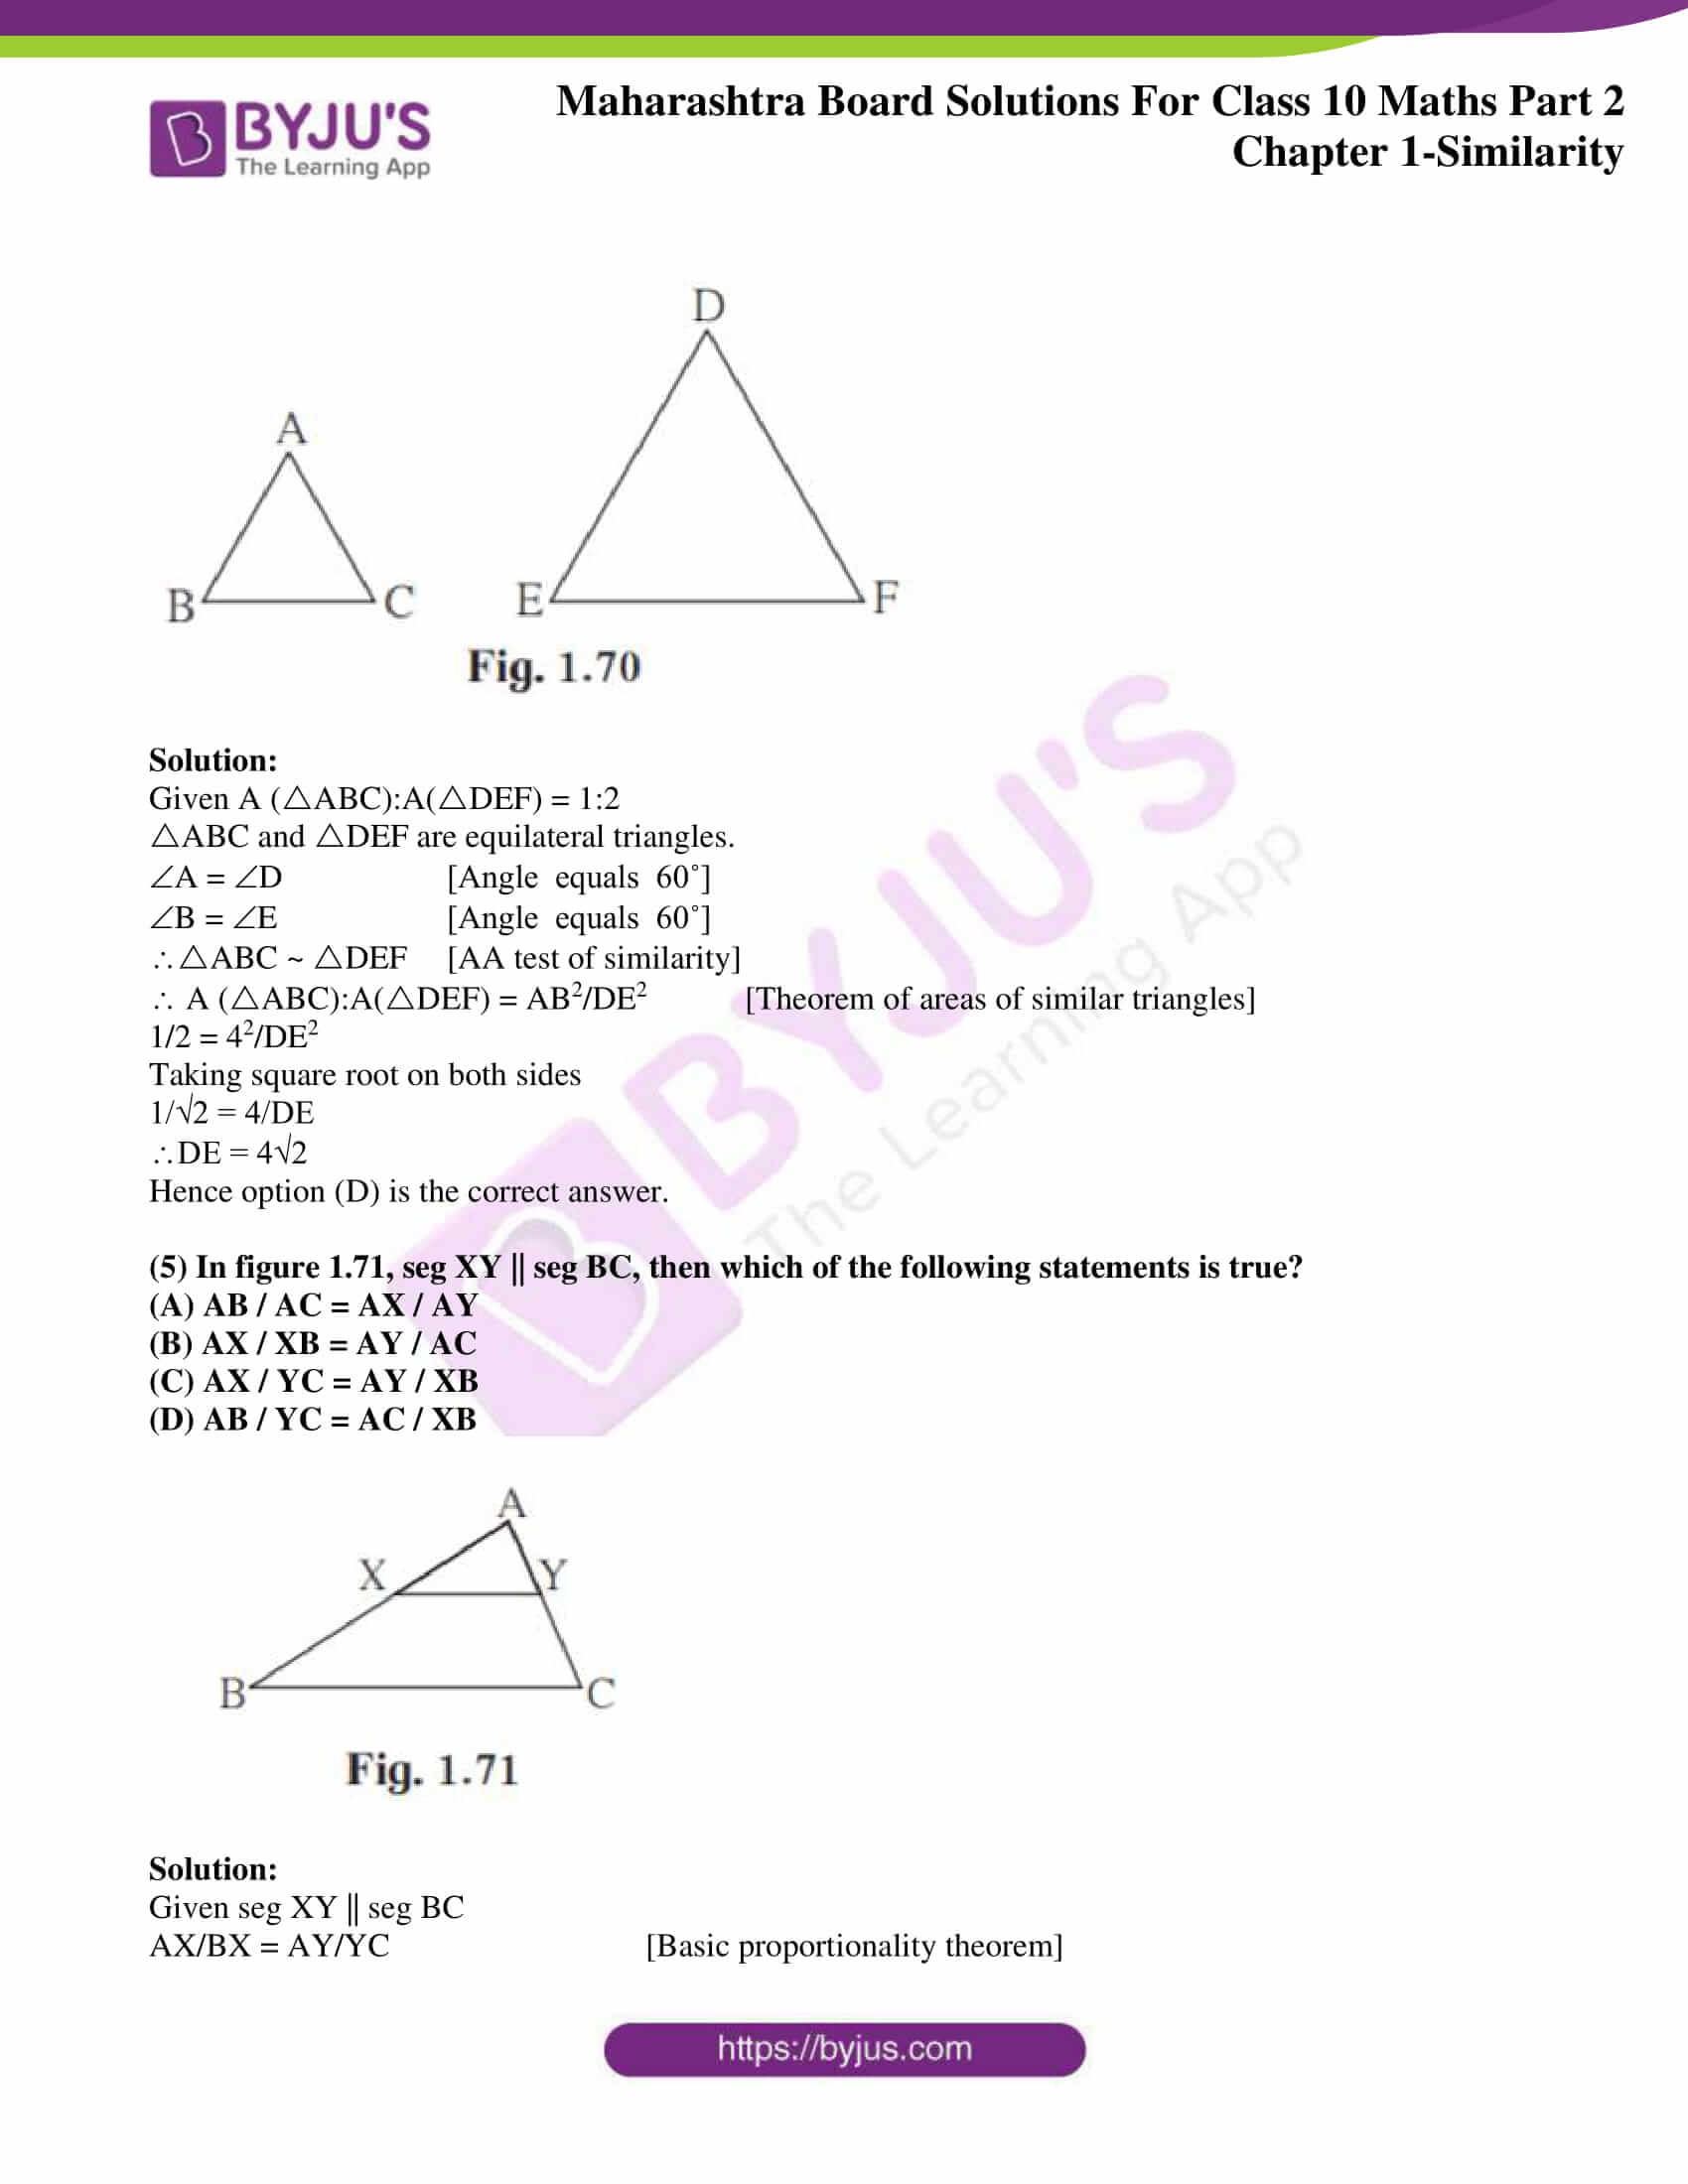 msbshse sol class 10 maths part 2 chapter 1 20